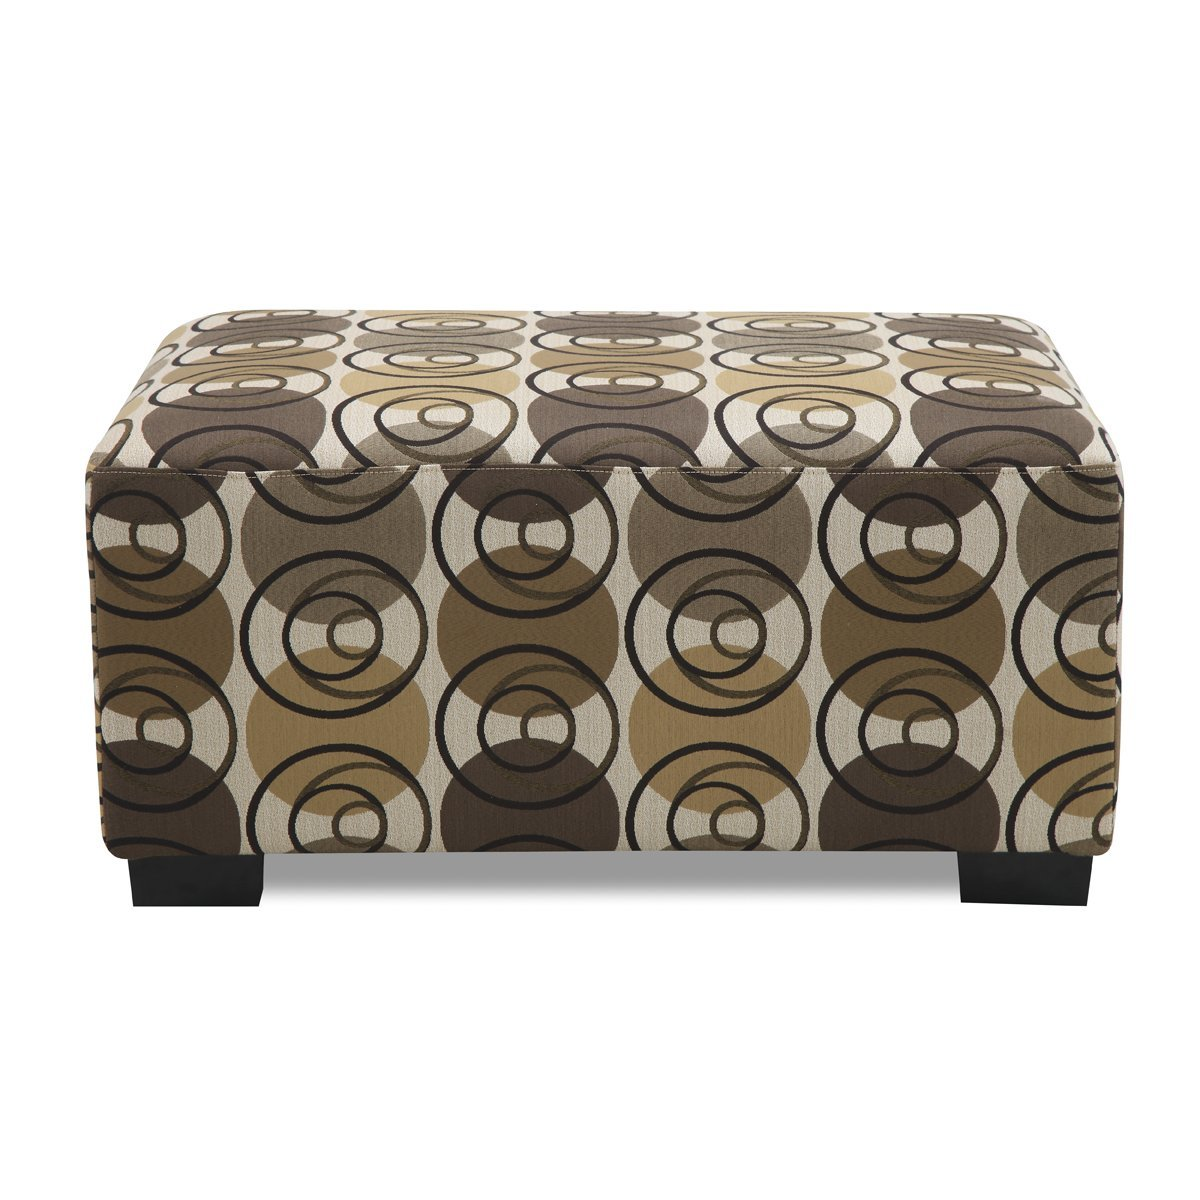 Poundex Banford Ottoman, Dark Chocolate by Poundex